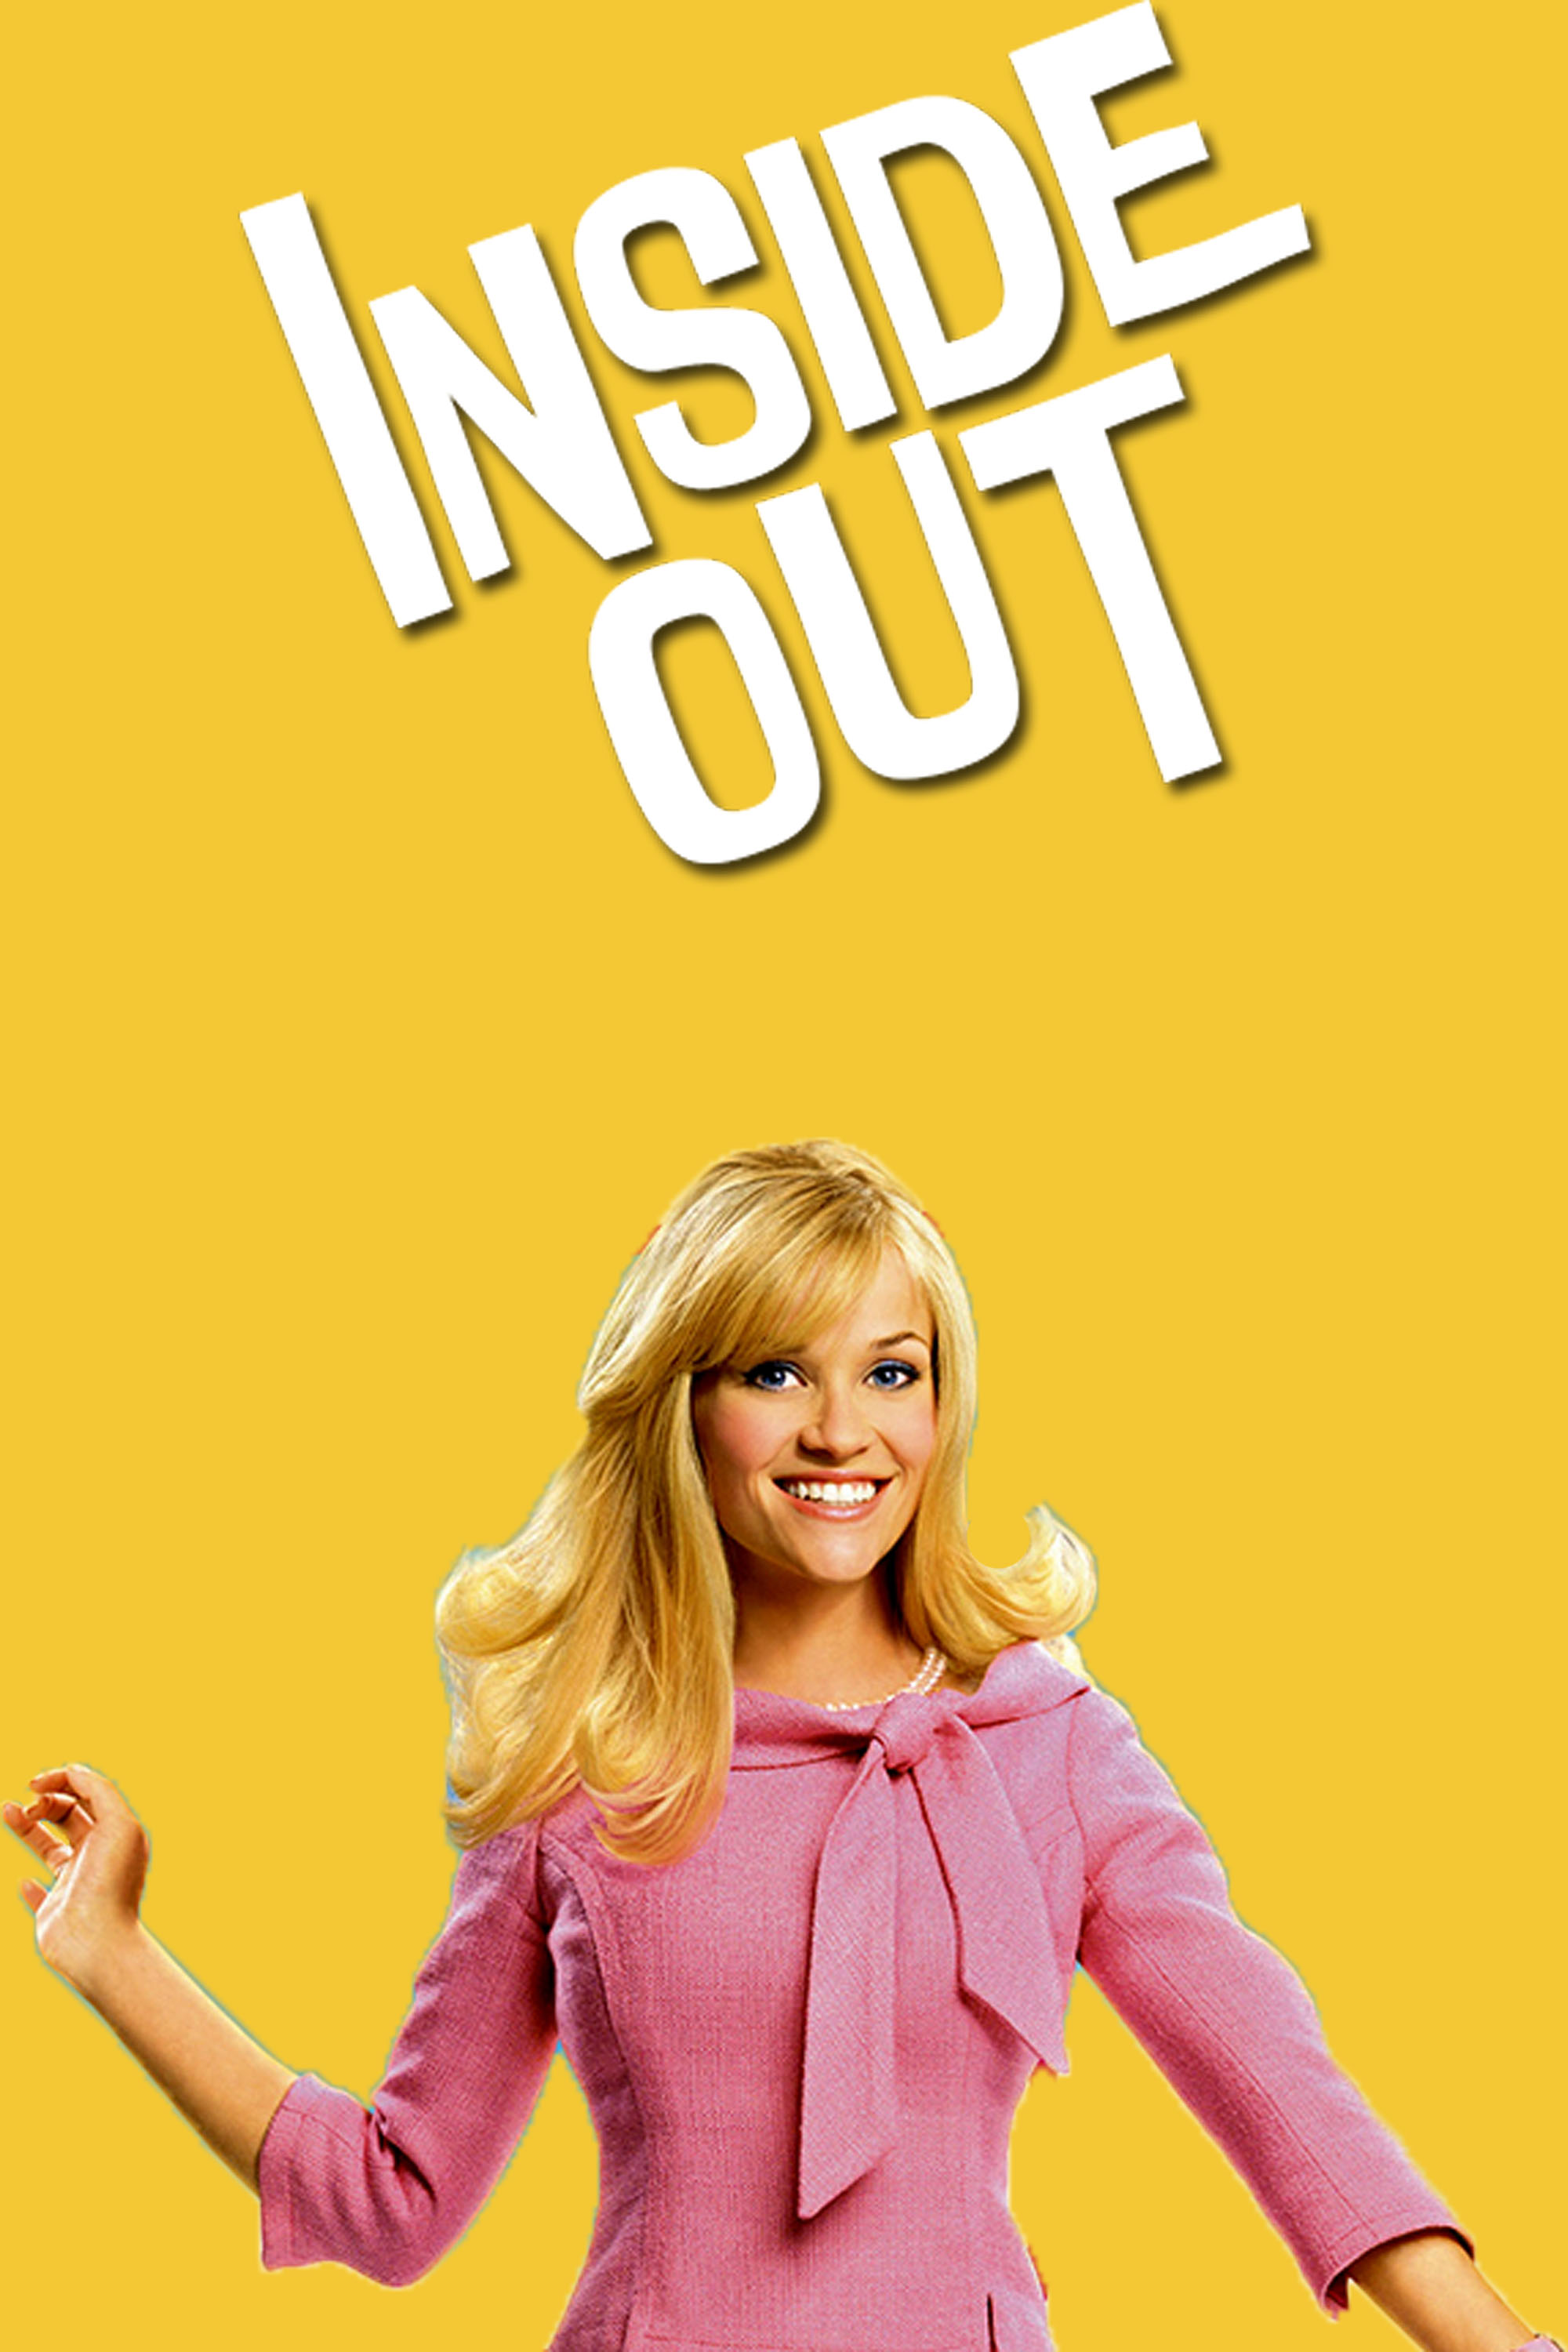 Inside Out (Broadwaygirl918 Style)